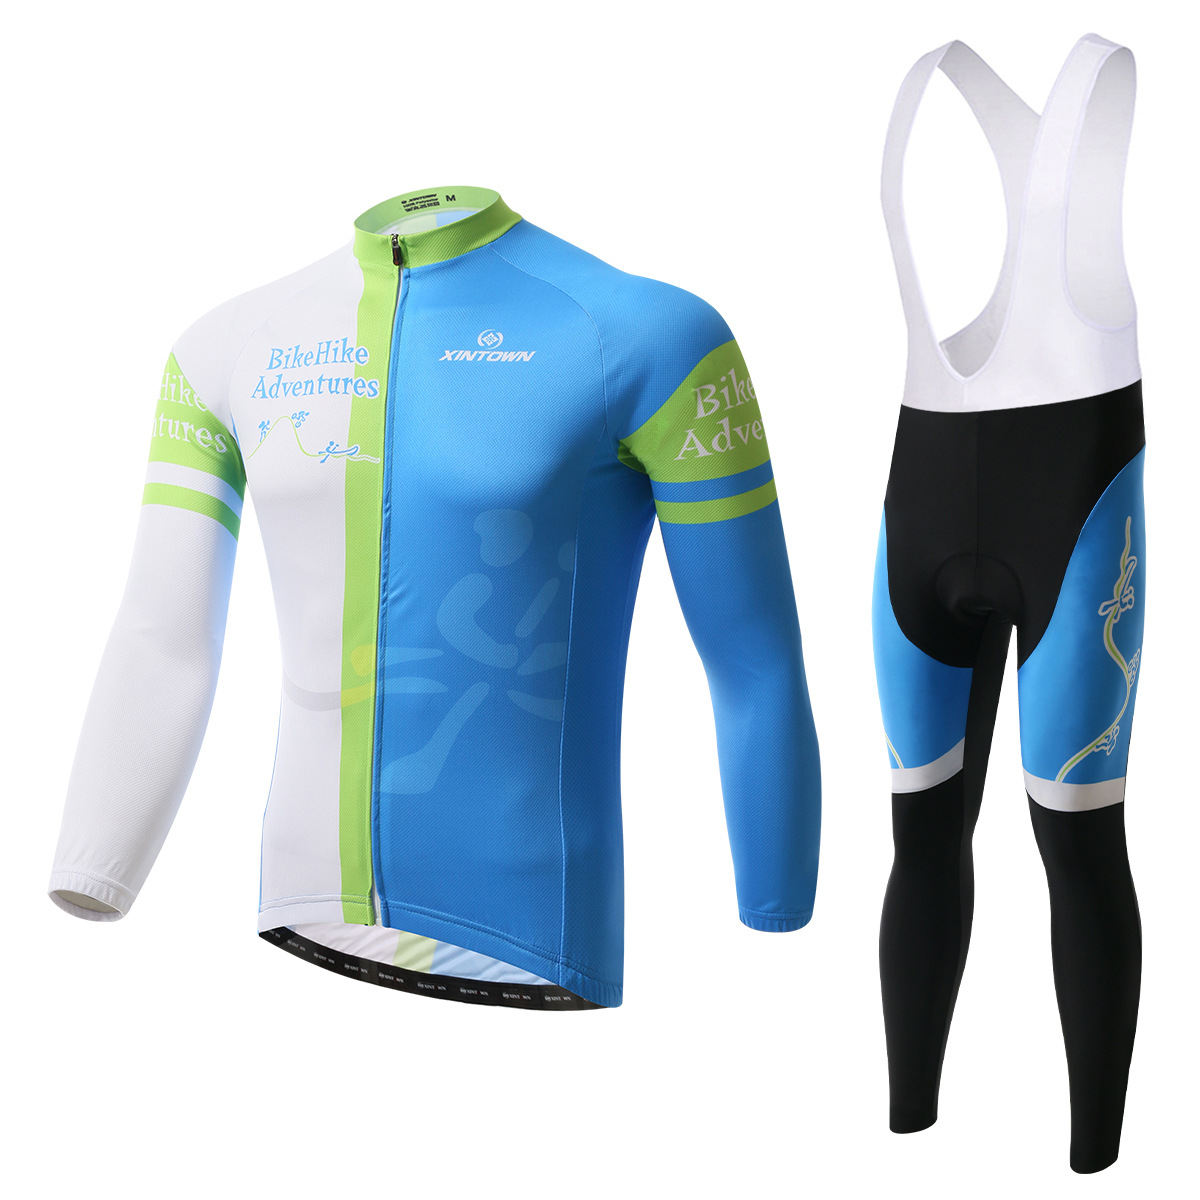 XINTOWN Bike Riding Jersey Bikini Long Sleeve Suits Set Cycling suit Fleece wind warm functional underwear